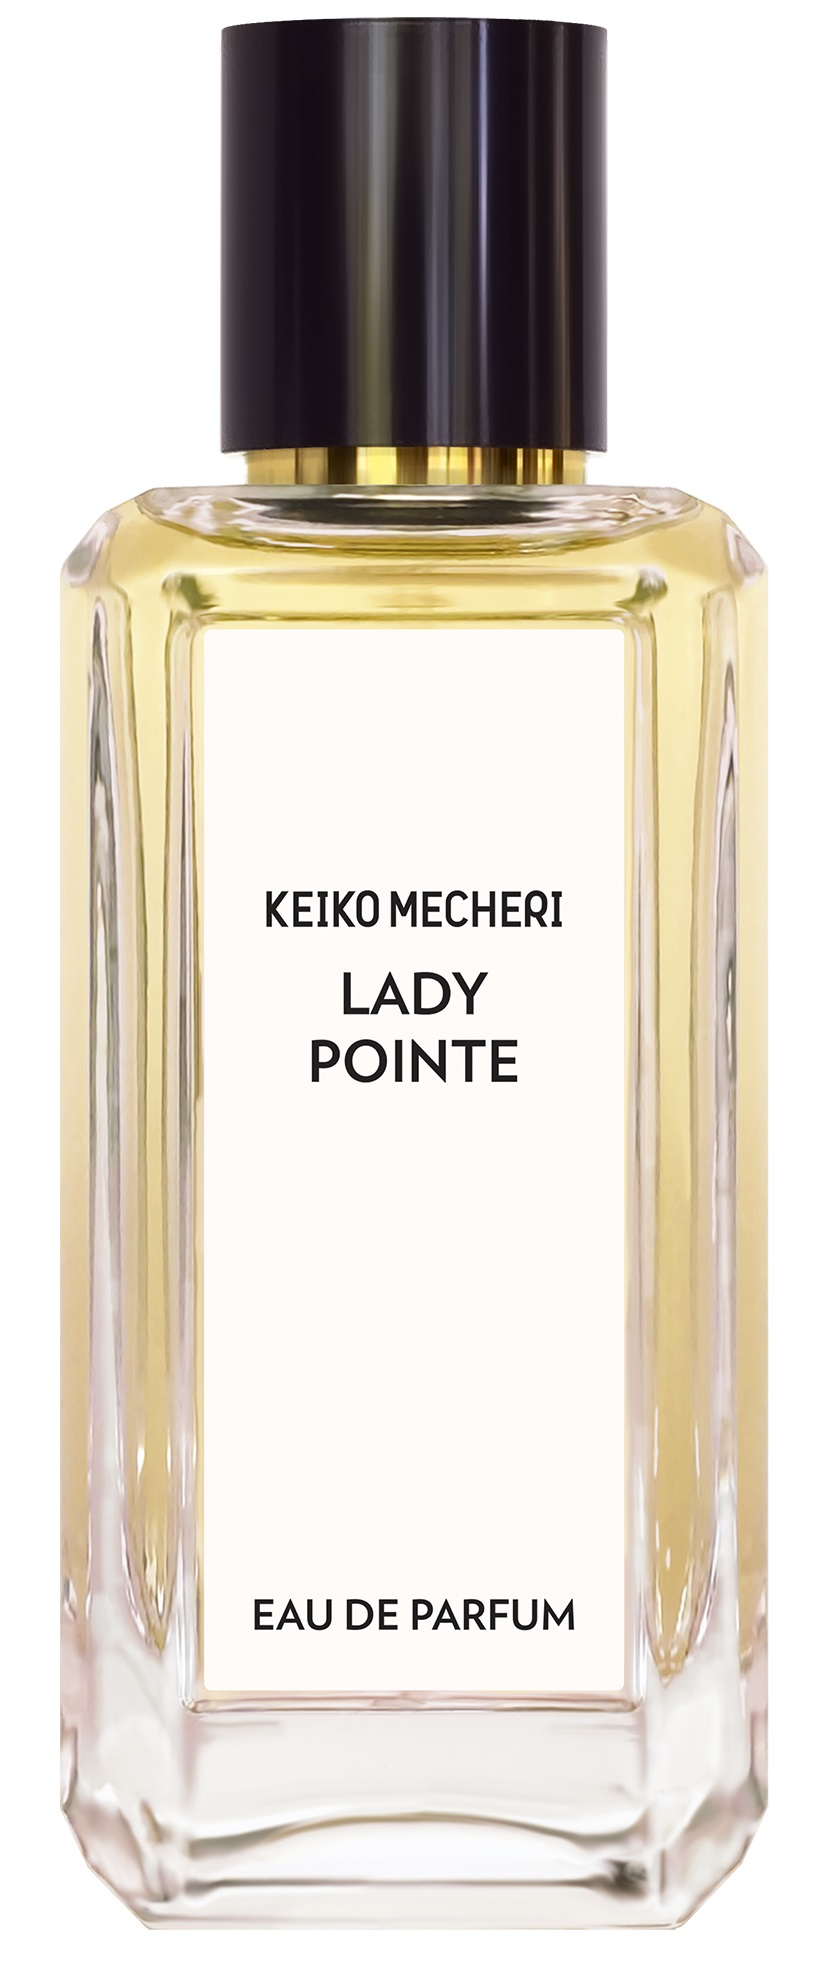 Keiko Mecheri Lady Pointe edp 100 ml.